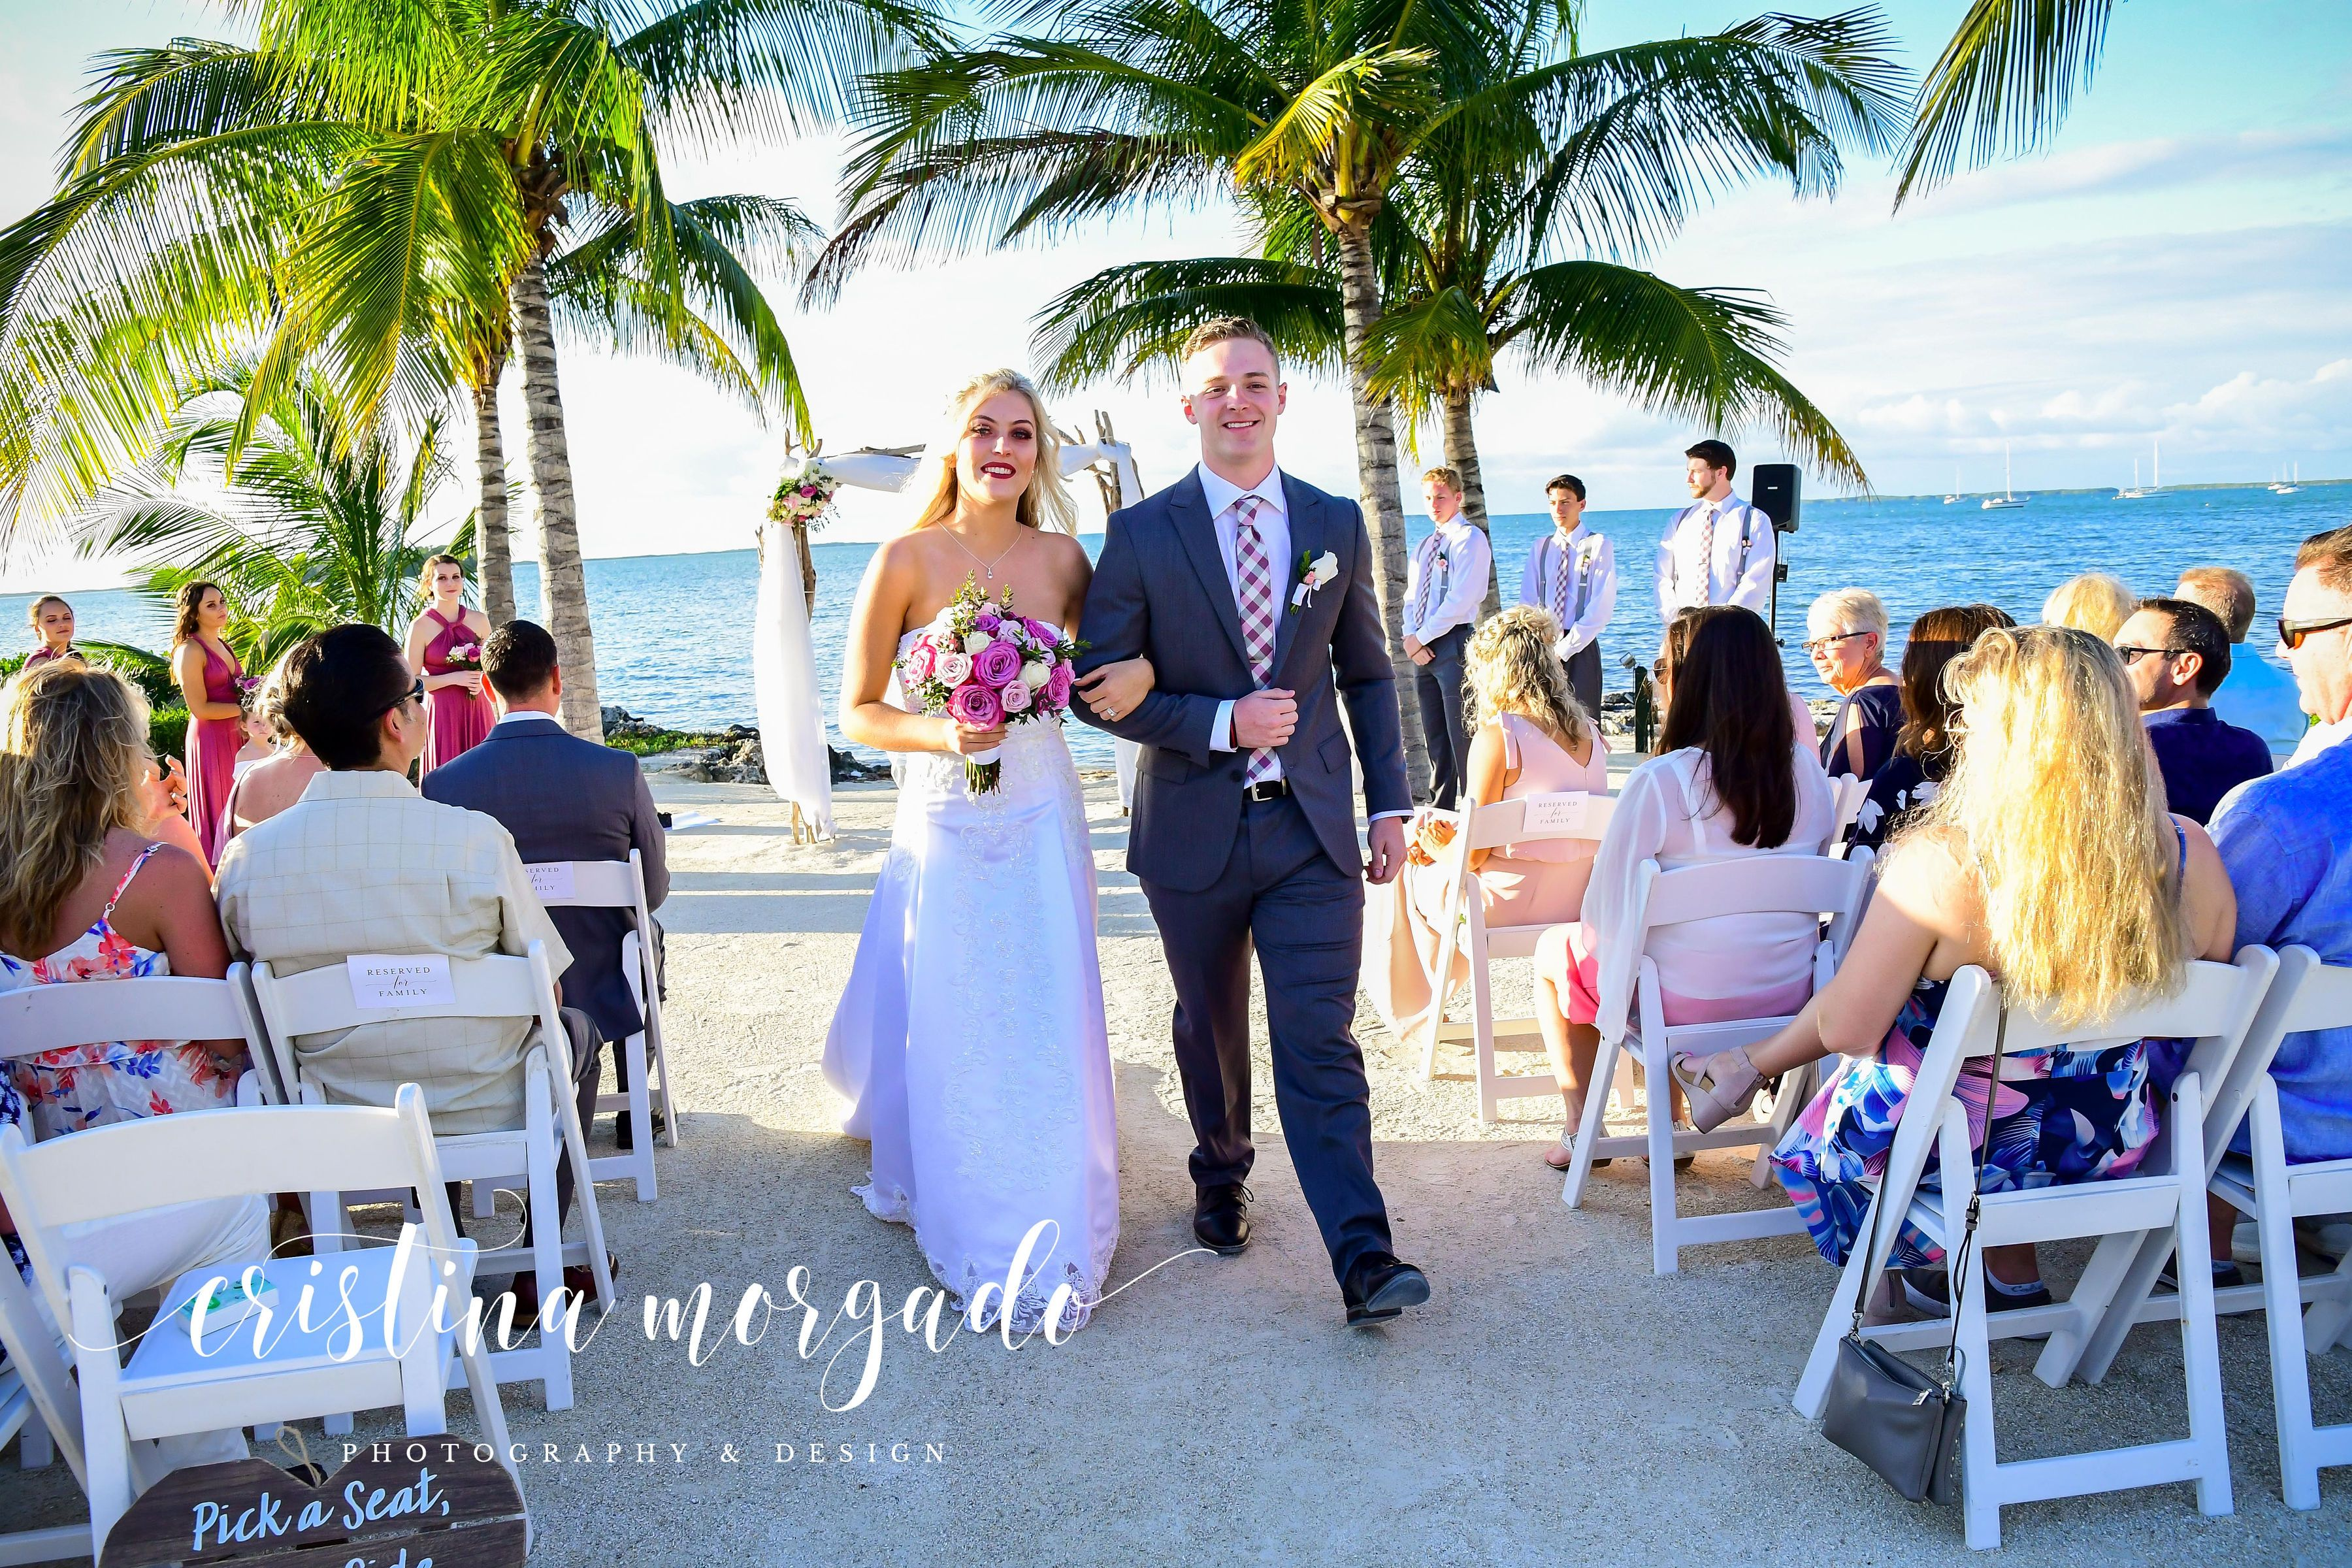 All Inclusive Wedding Packages Florida Romantic Beach Wedding Packages In 2020 Wedding Venues Beach Romantic Beach Wedding Florida Wedding Venues